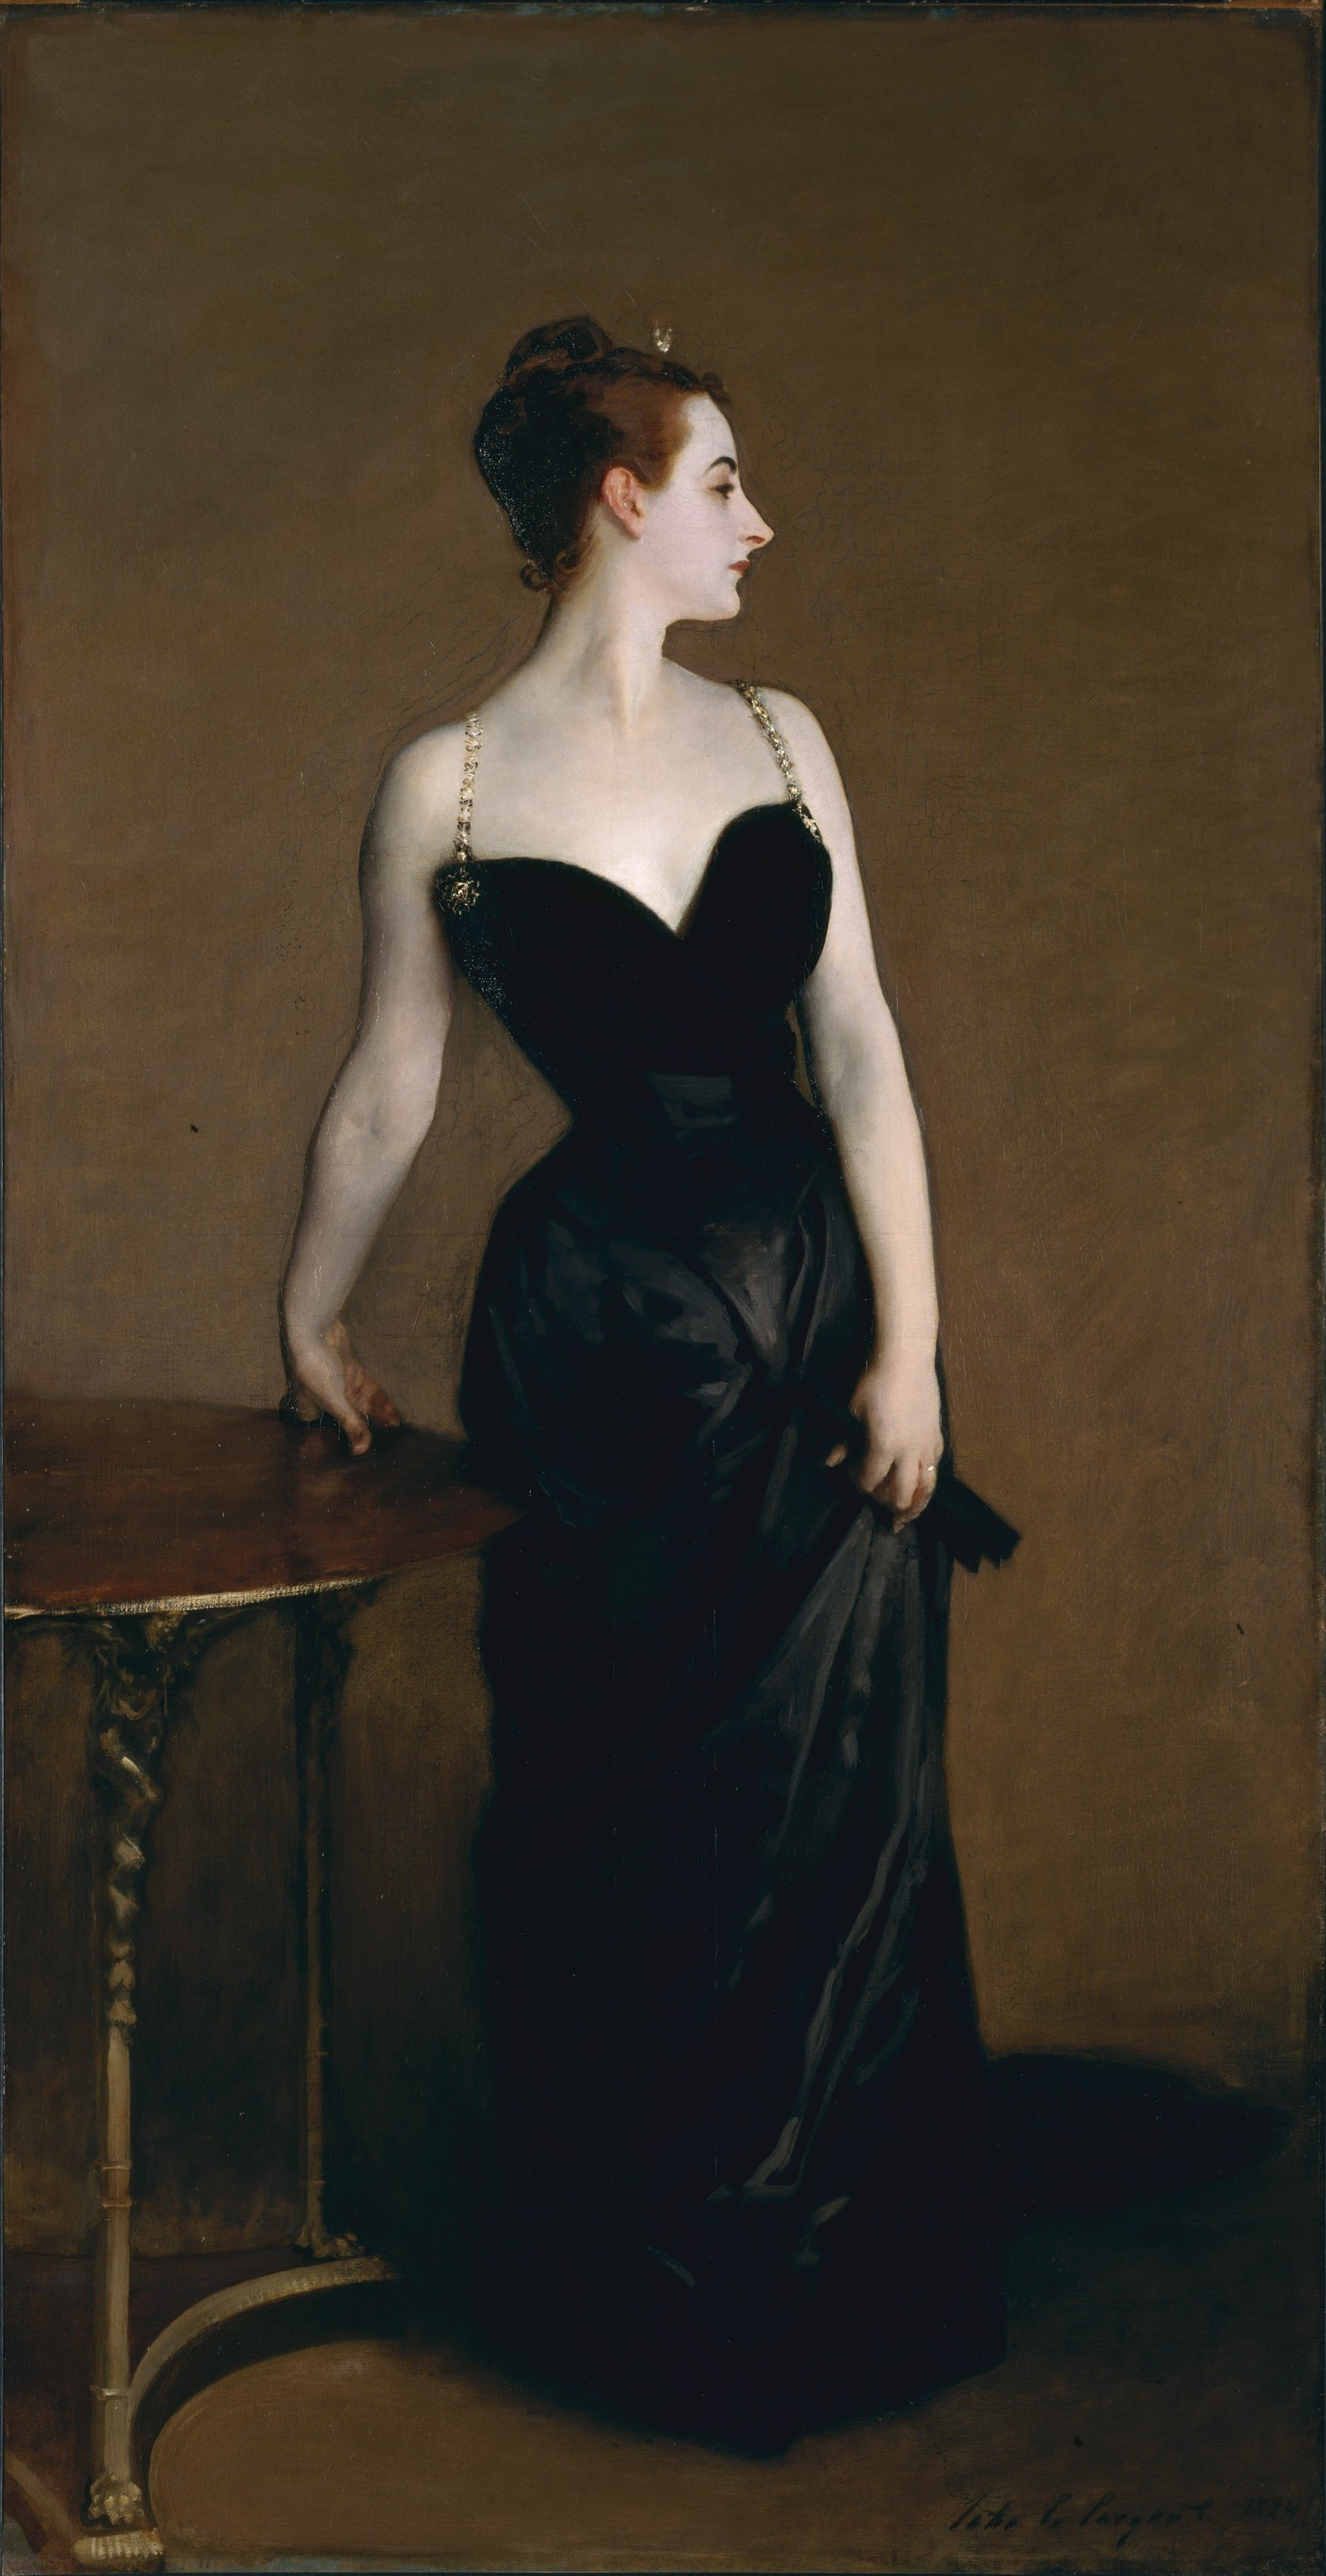 After the scandal at the salon, Sargent repainted the strap.